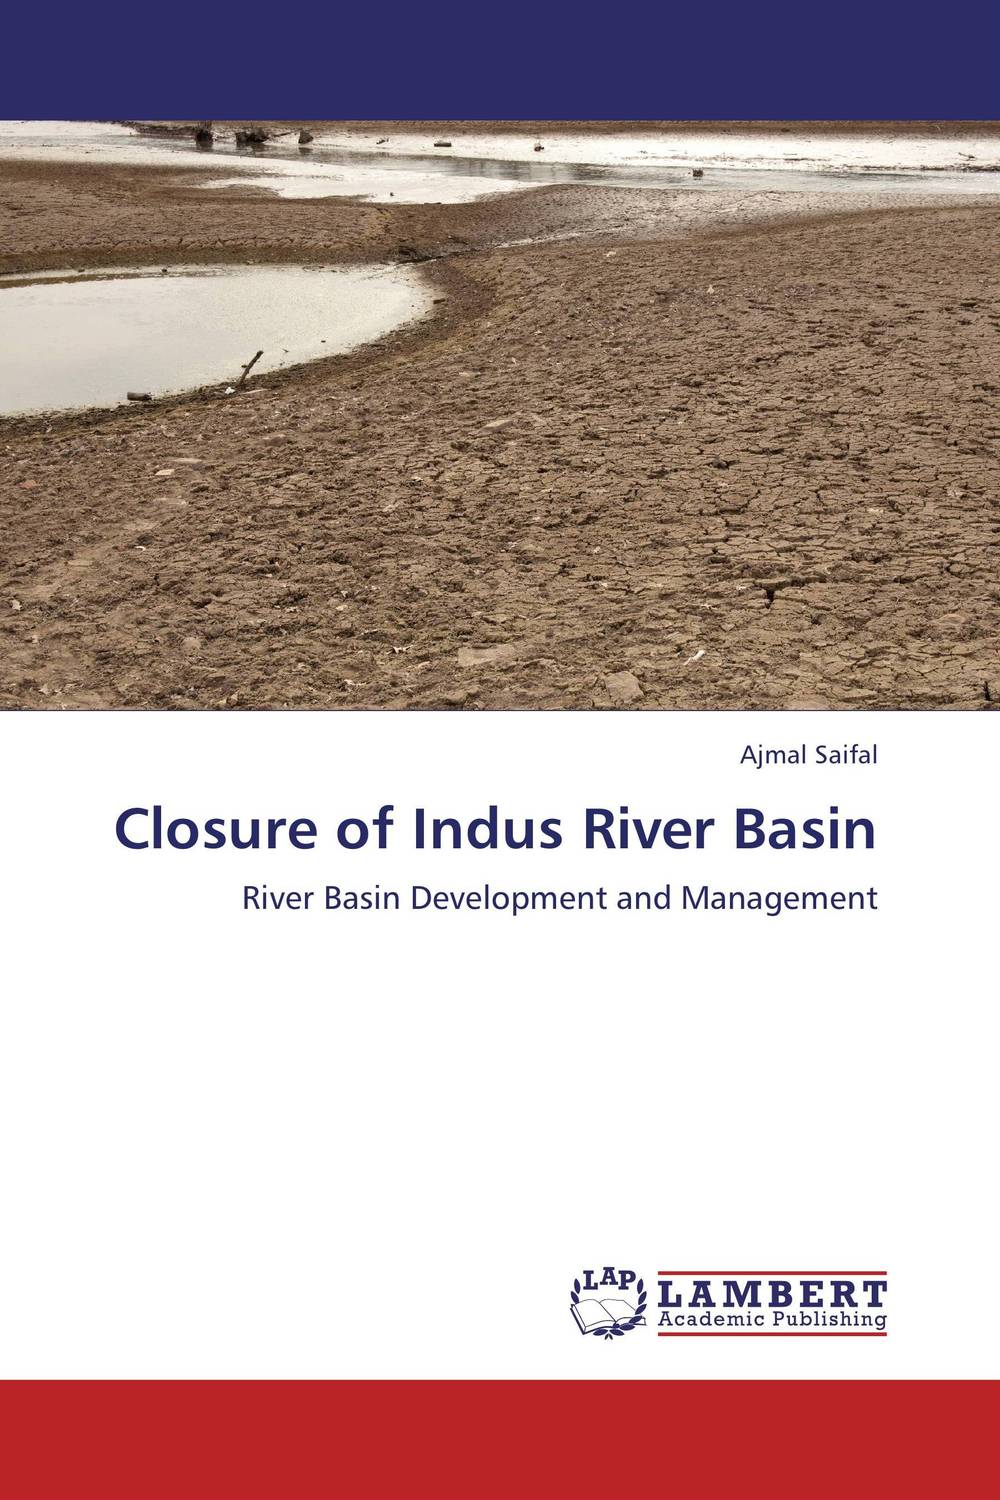 Closure of Indus River Basin indus river unleashed